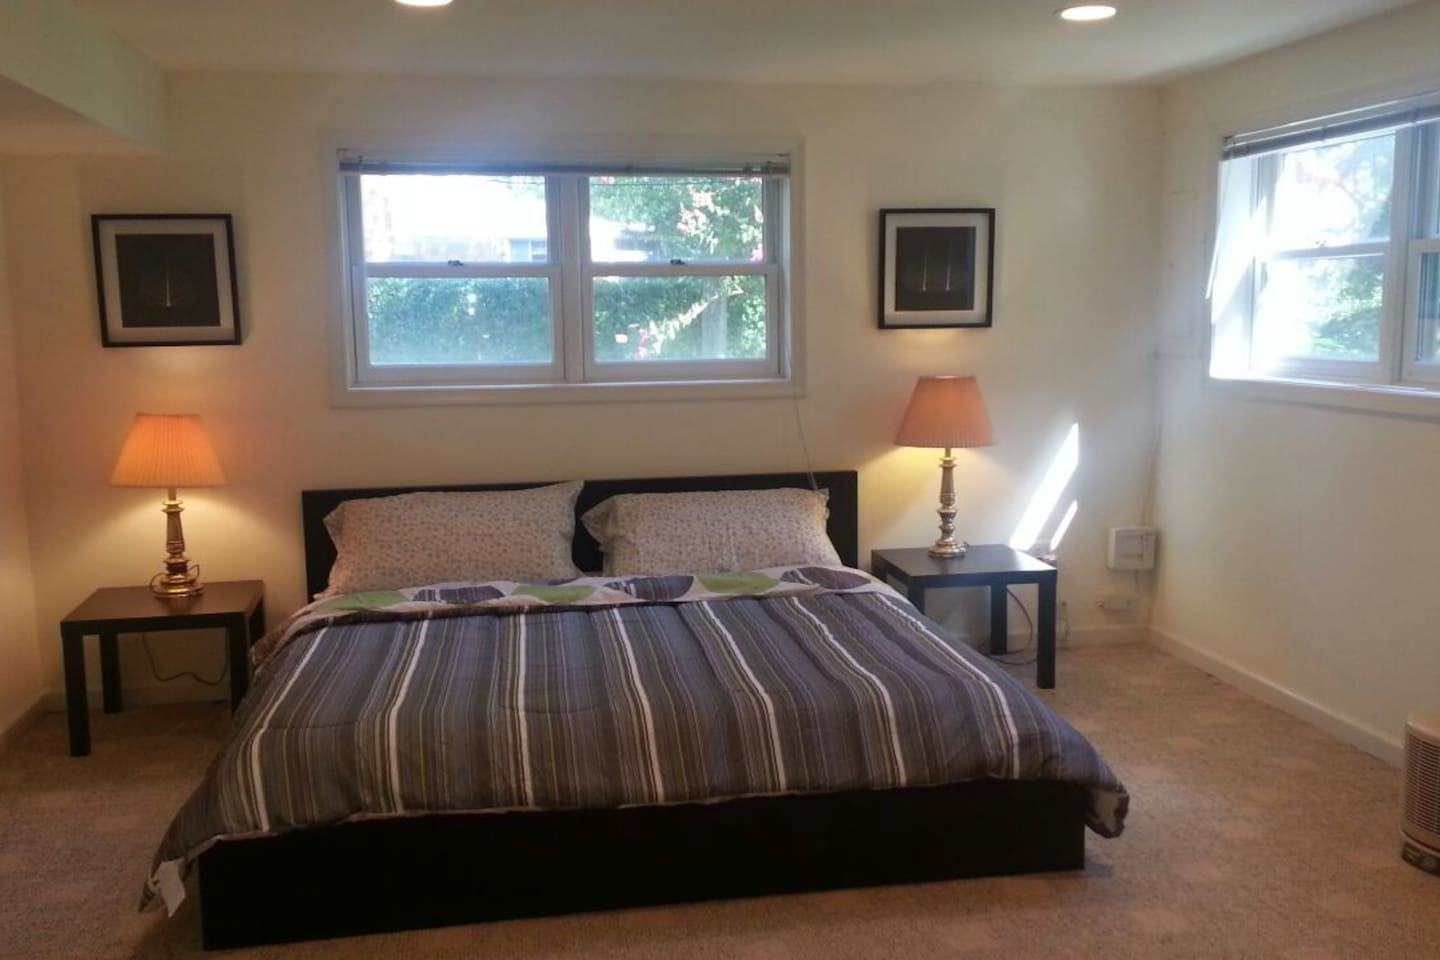 King Bed, two windows, dresser, closet, portrait mirror and work table; room is 275 sqft